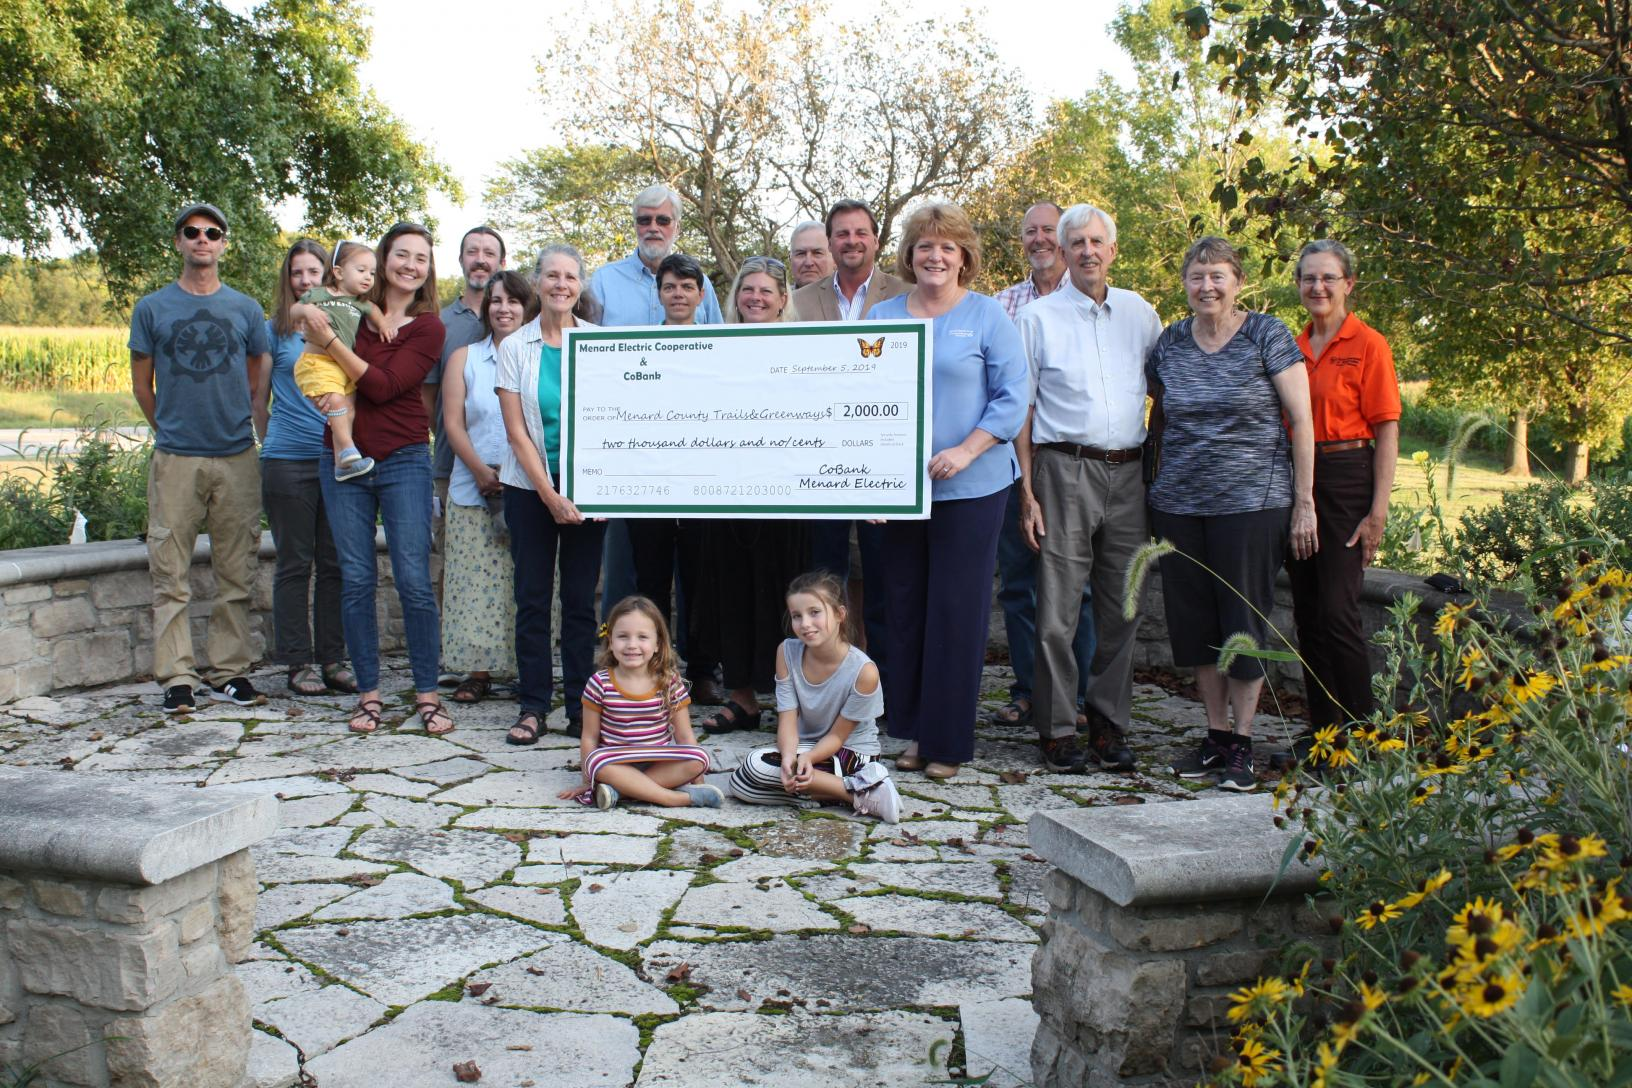 Menard County Trails and Greenways check presentation